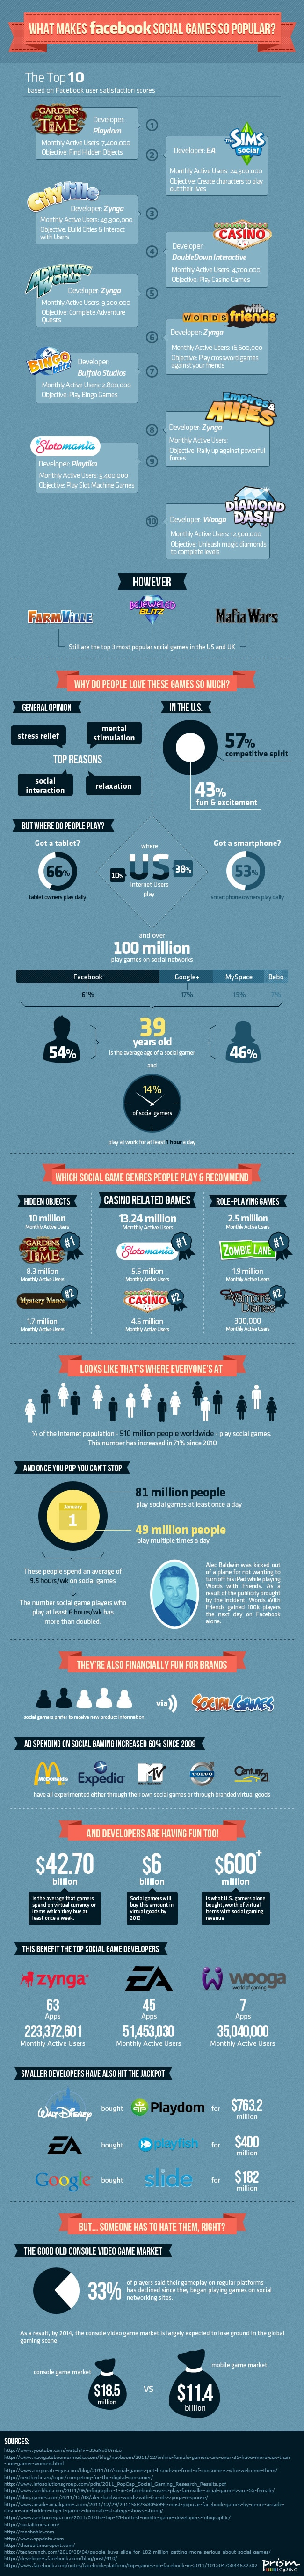 social-gaming-statistics-infographic